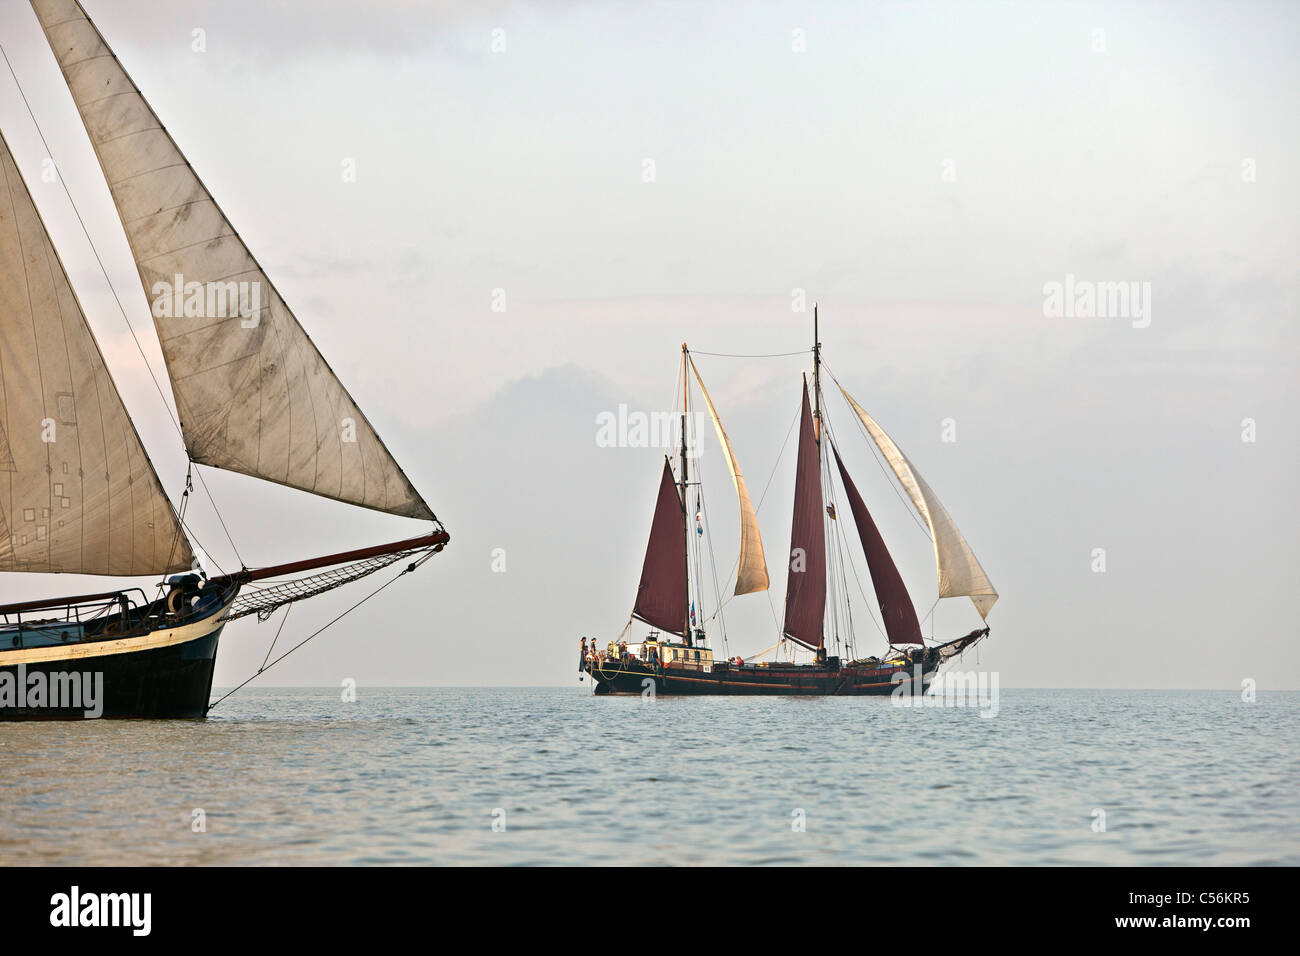 The Netherlands, Enkhuizen. Yearly race of traditional sailing ships called Klipperrace. - Stock Image